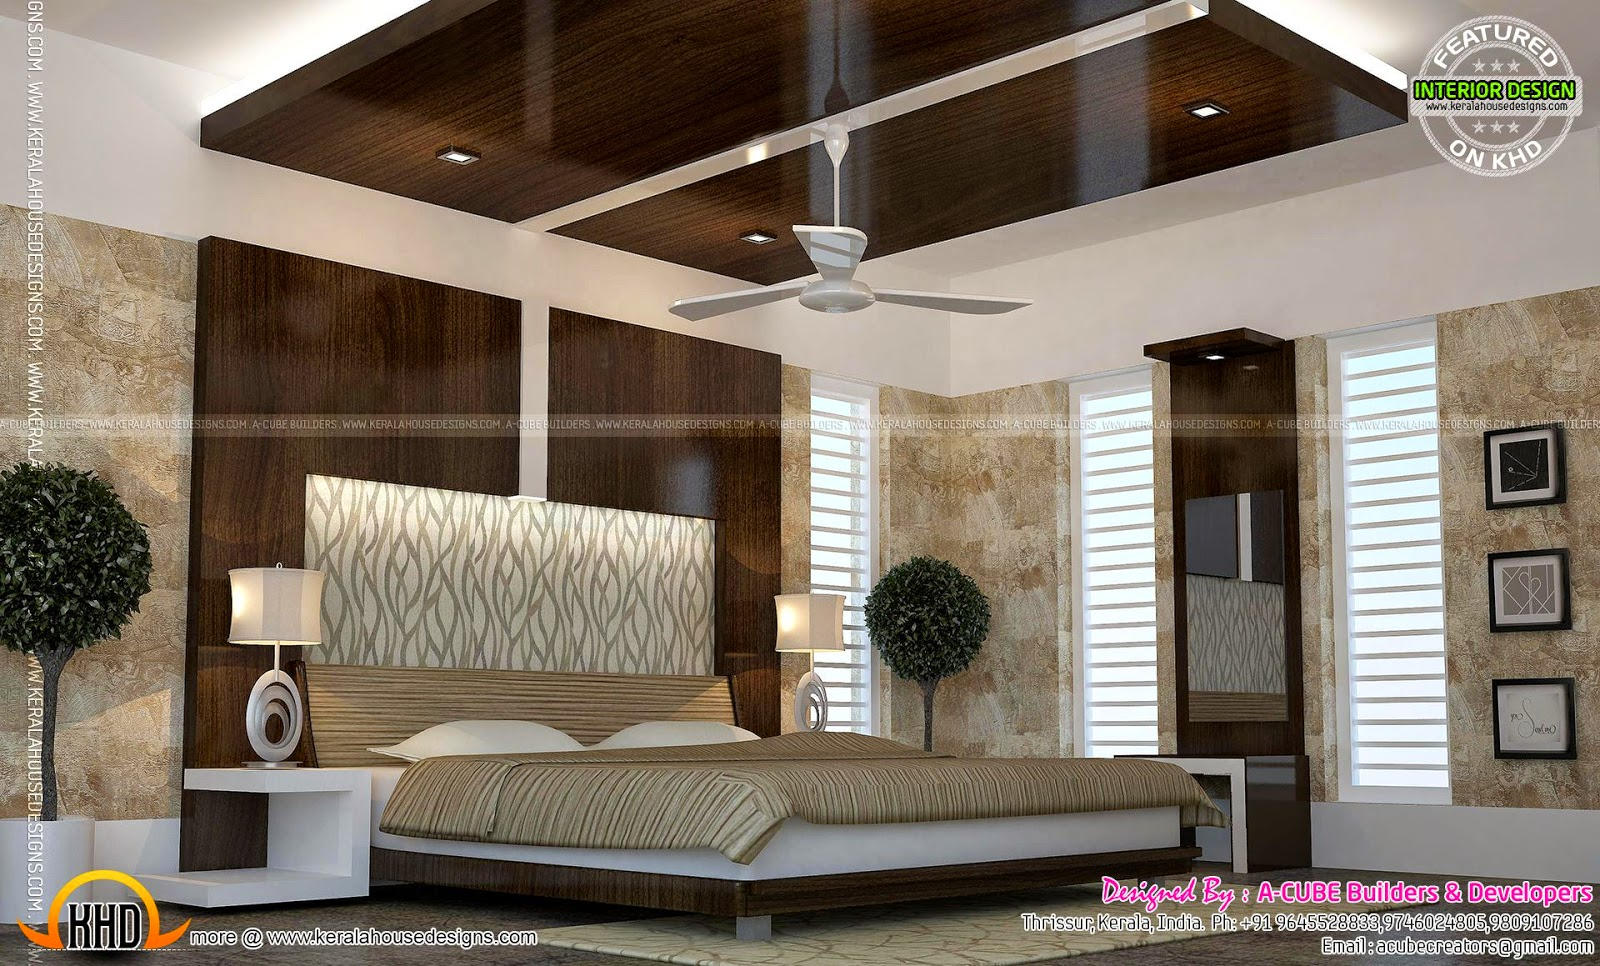 Kerala interior design ideas kerala home design and for Interior designs photos for home